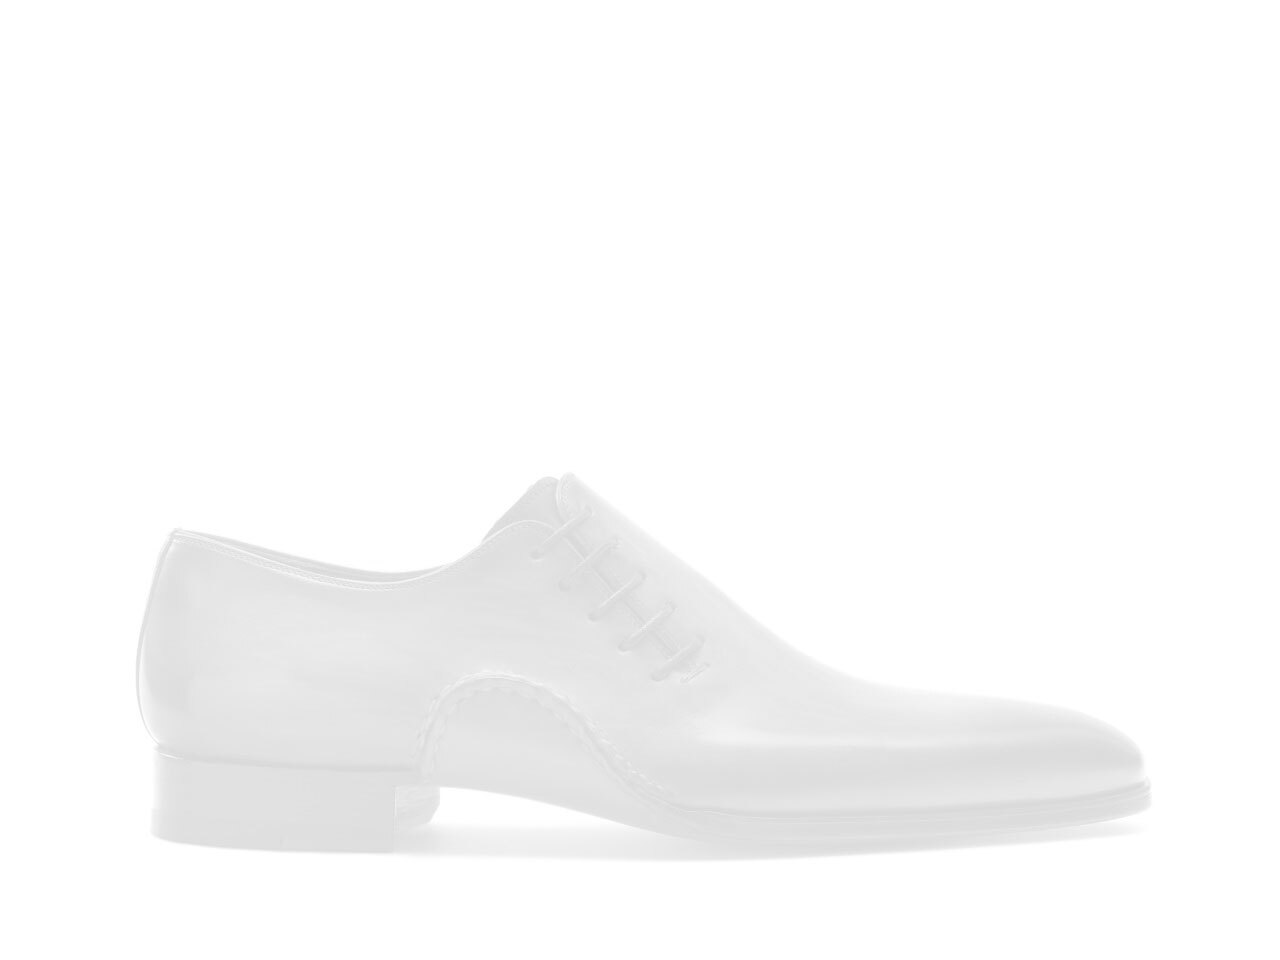 Side view of the Magnanni Capela White Men's Sneakers